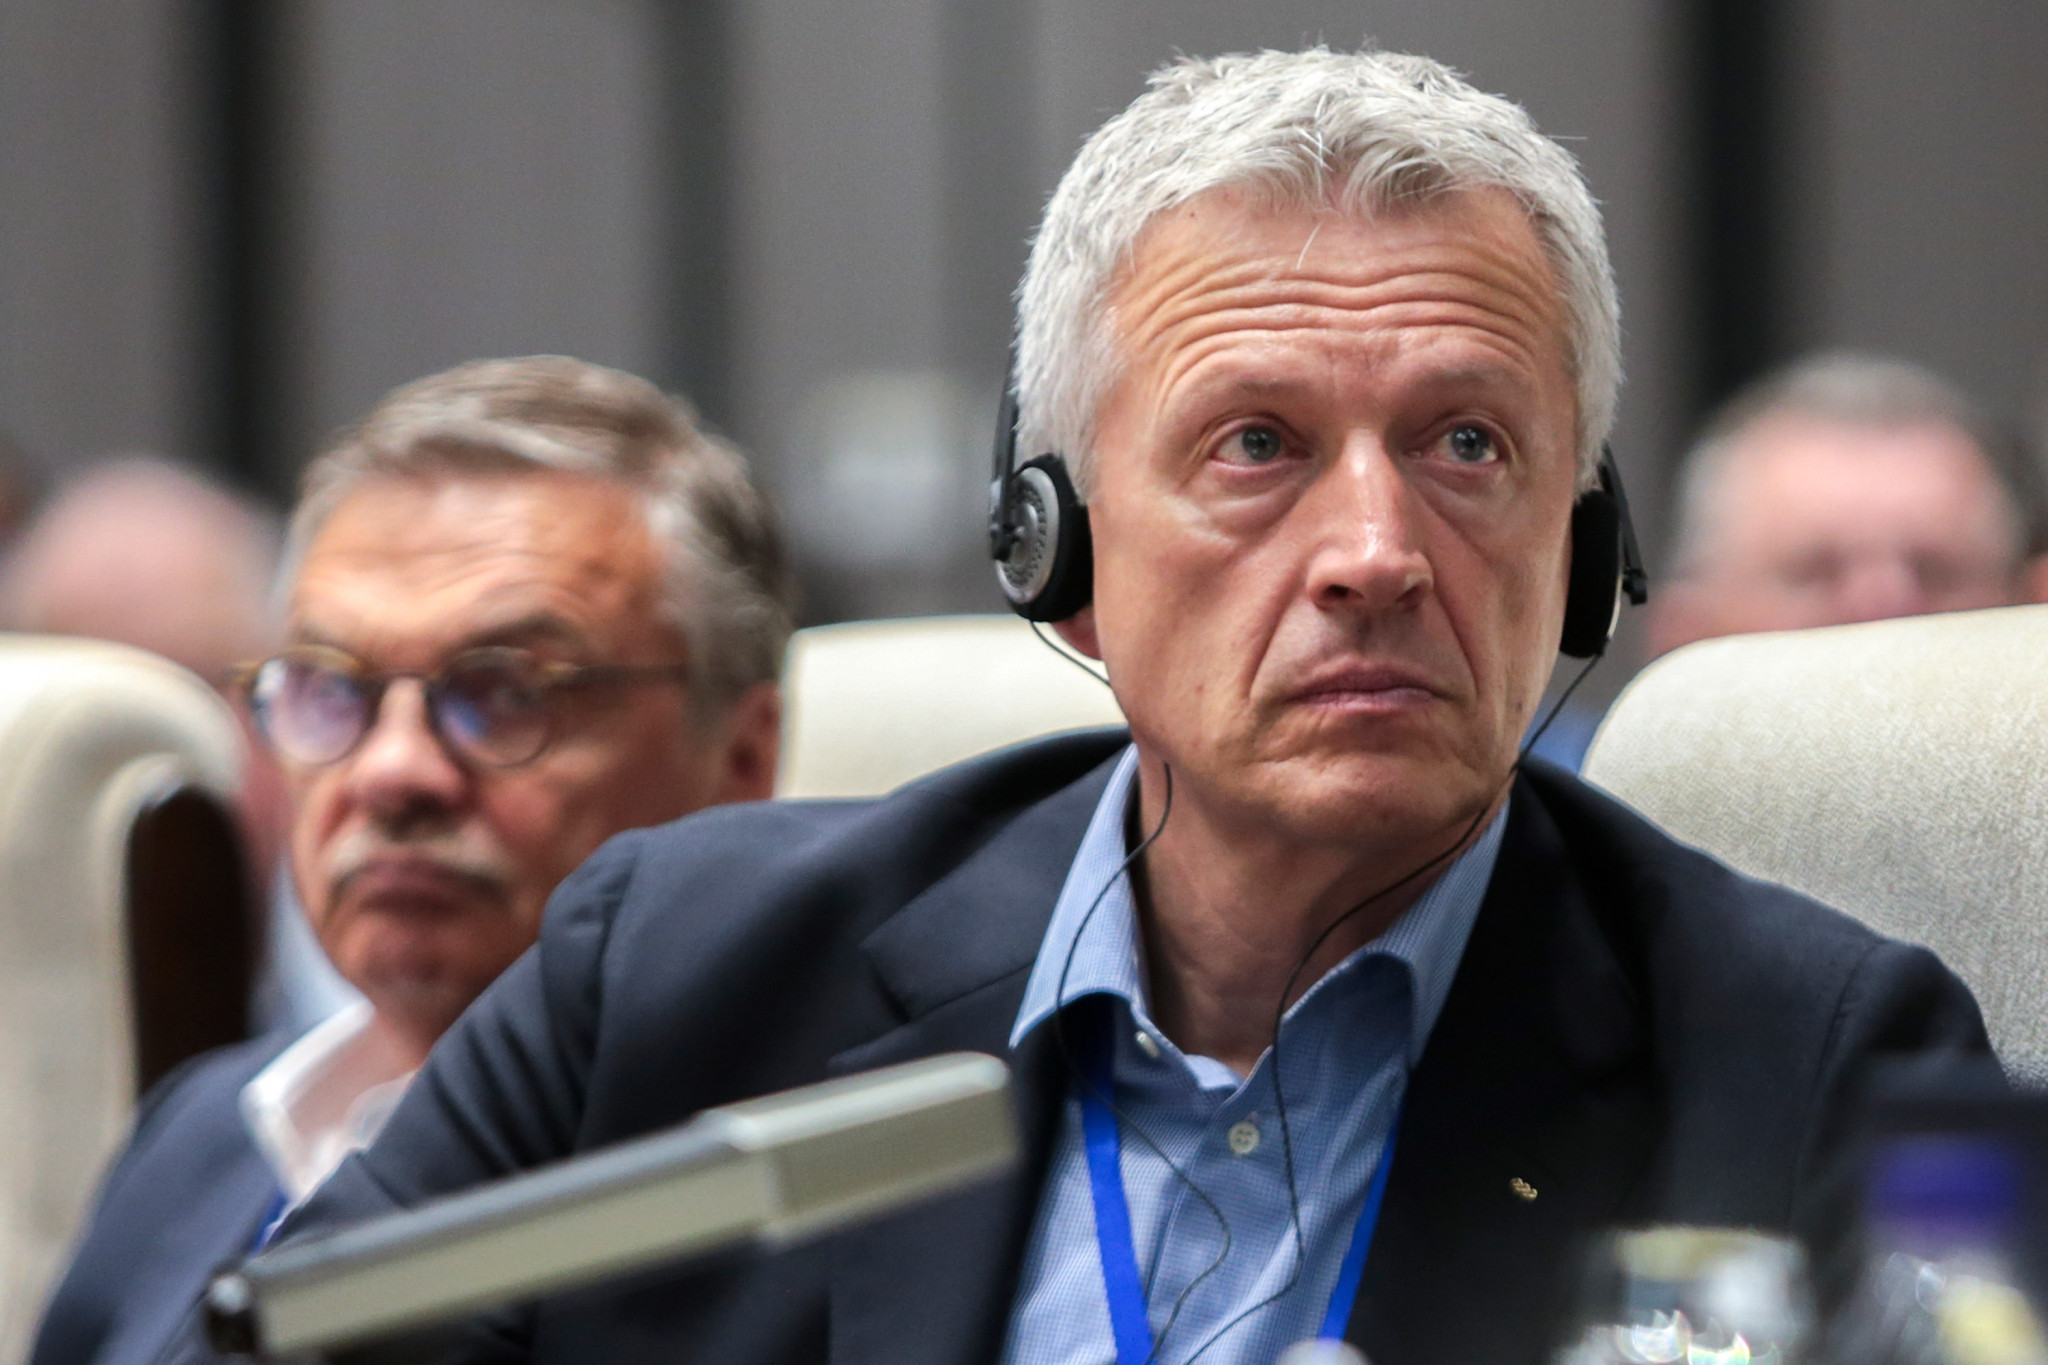 Romanian IOC member Octavian Morariu chairs the Future Winter Host Commission ©Getty Images